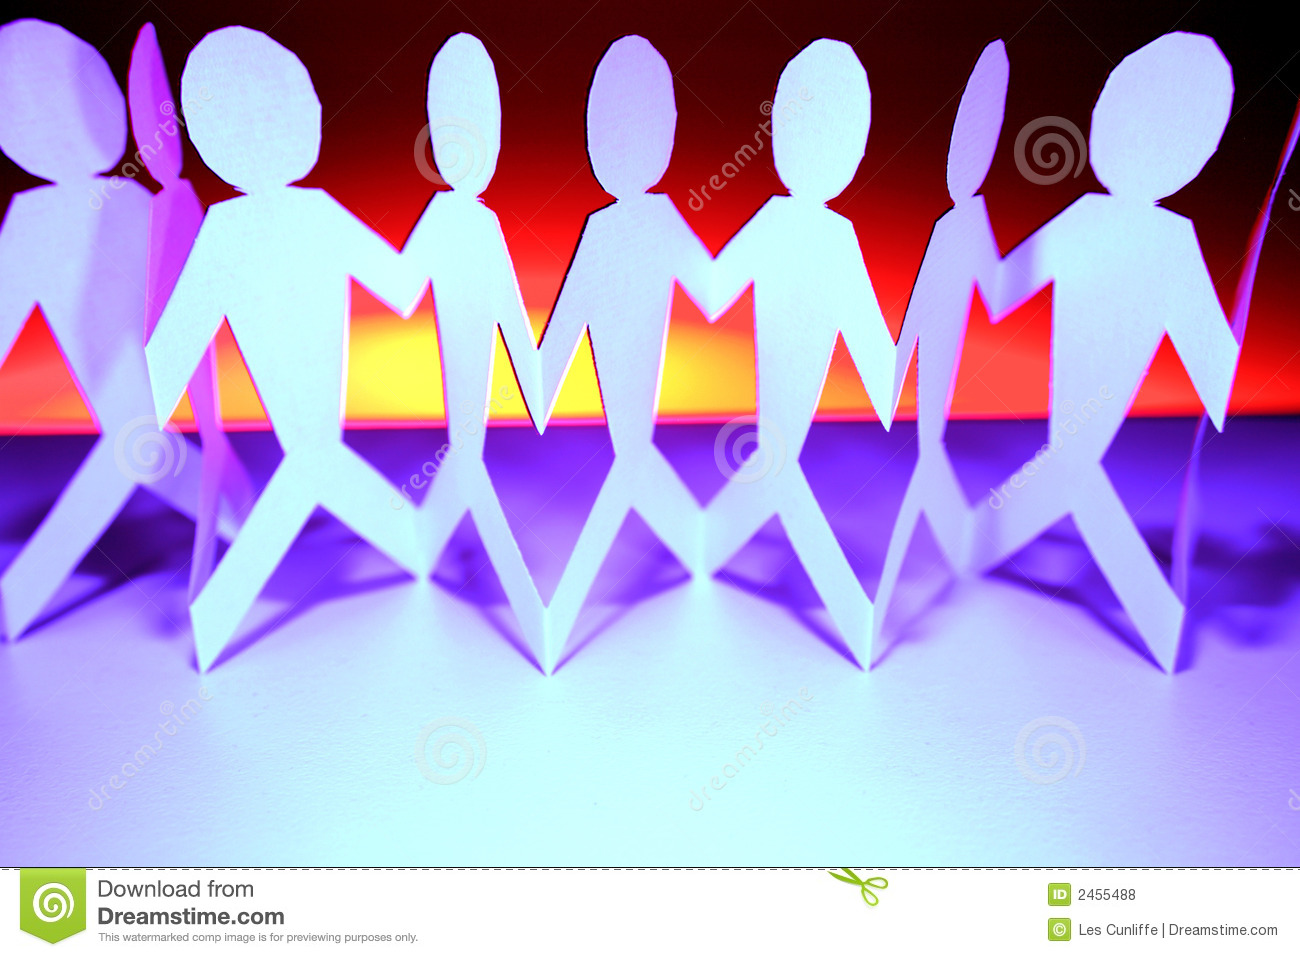 United Together Royalty Free Stock Photos - Image: 2455488